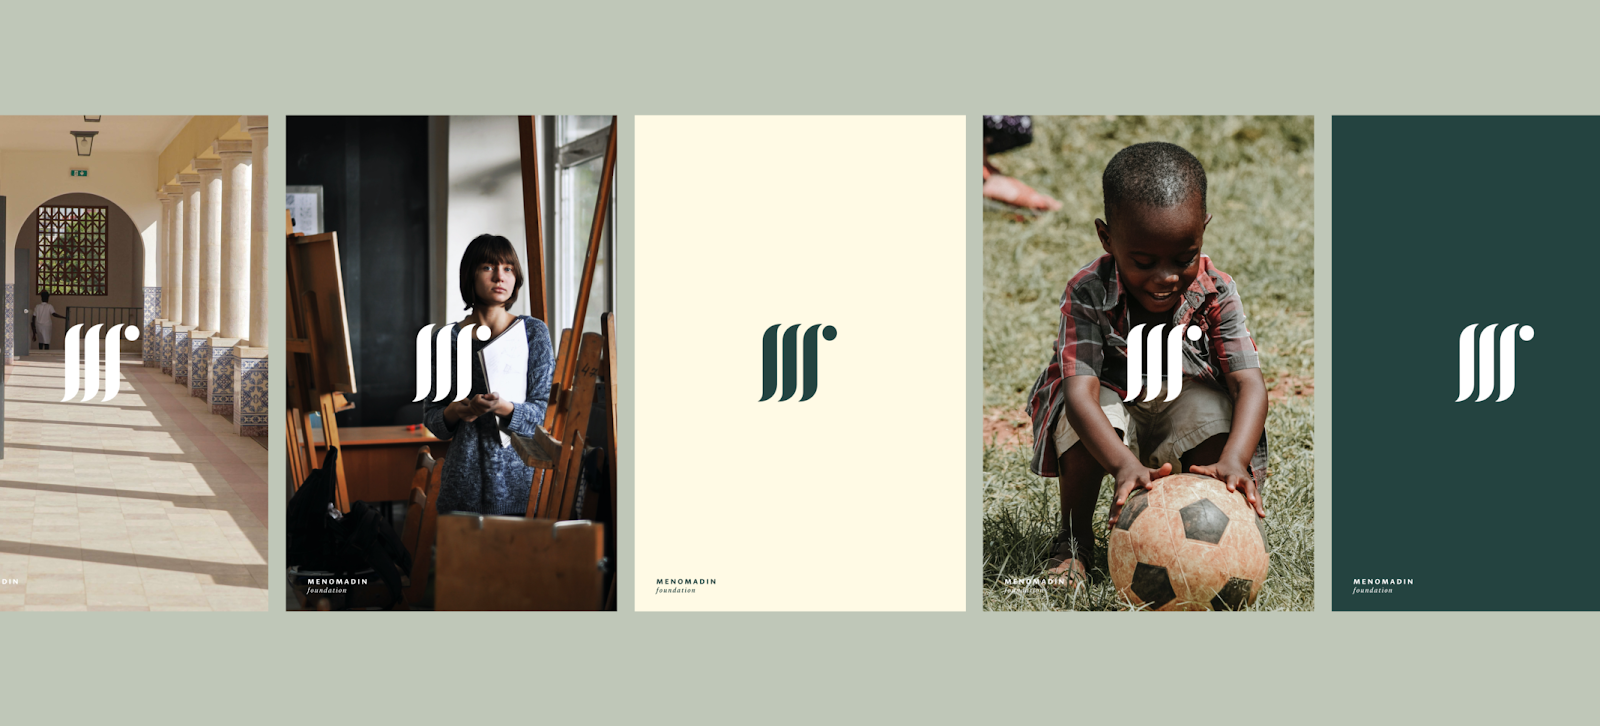 Branding and Visual Identity for the Menomadin Foundation 1